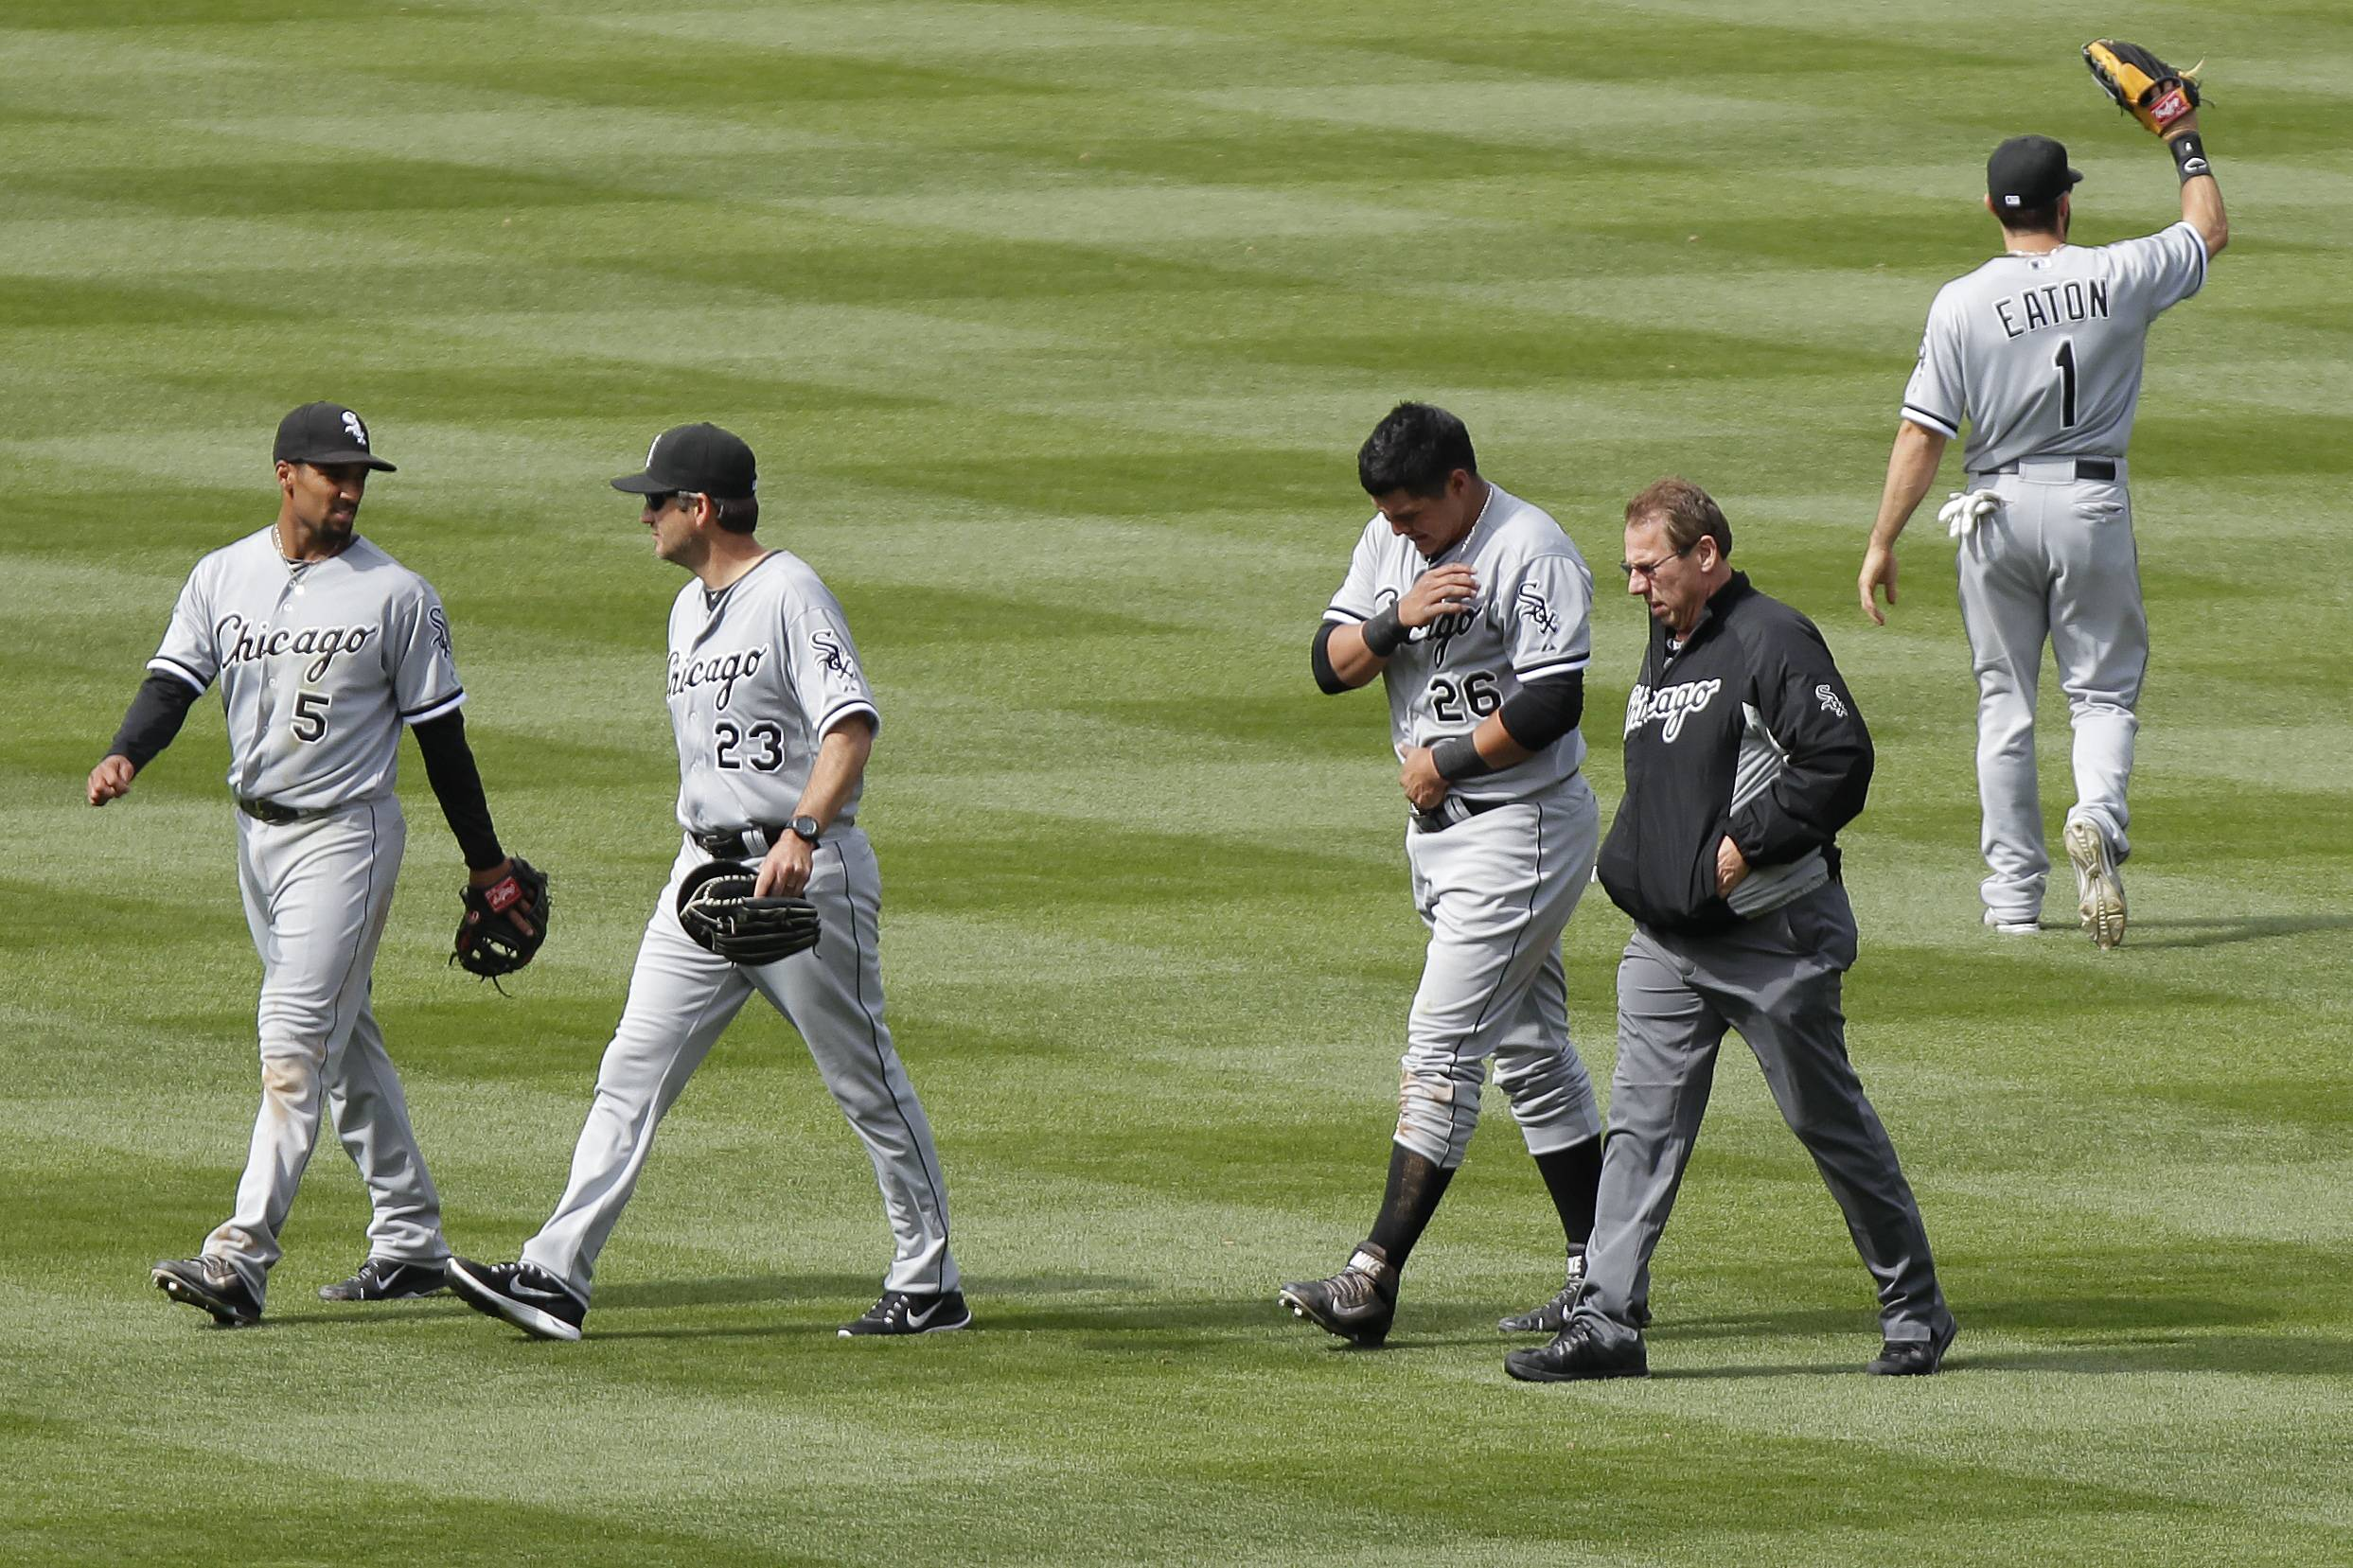 Chicago White Sox athletic trainer Herman Schneider, second from right, escorts Avisail Garcia (26) off the field after Garcia jammed his left shoulder on a diving catch during the sixth inning of a baseball game against the Colorado Rockies, Wednesday, April 9, 2014, in Denver. The Rockies won 10-4.